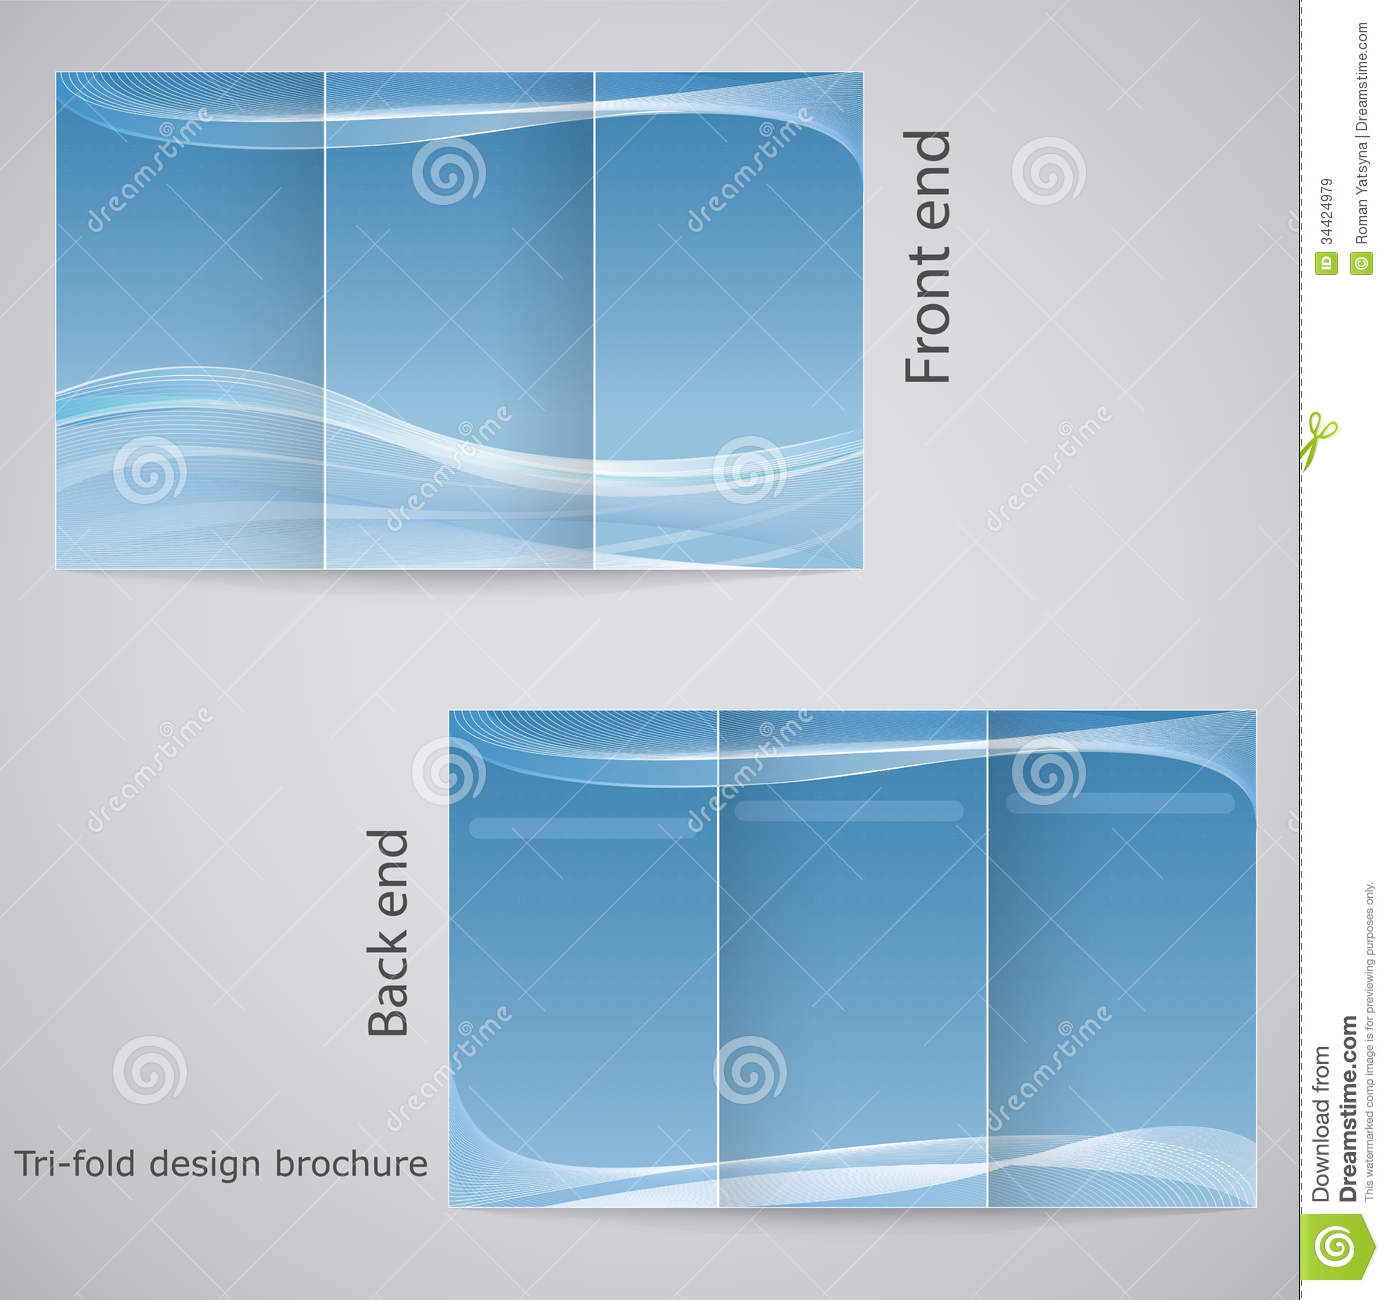 17 tri fold brochure design templates images tri fold for Free printable tri fold brochure template